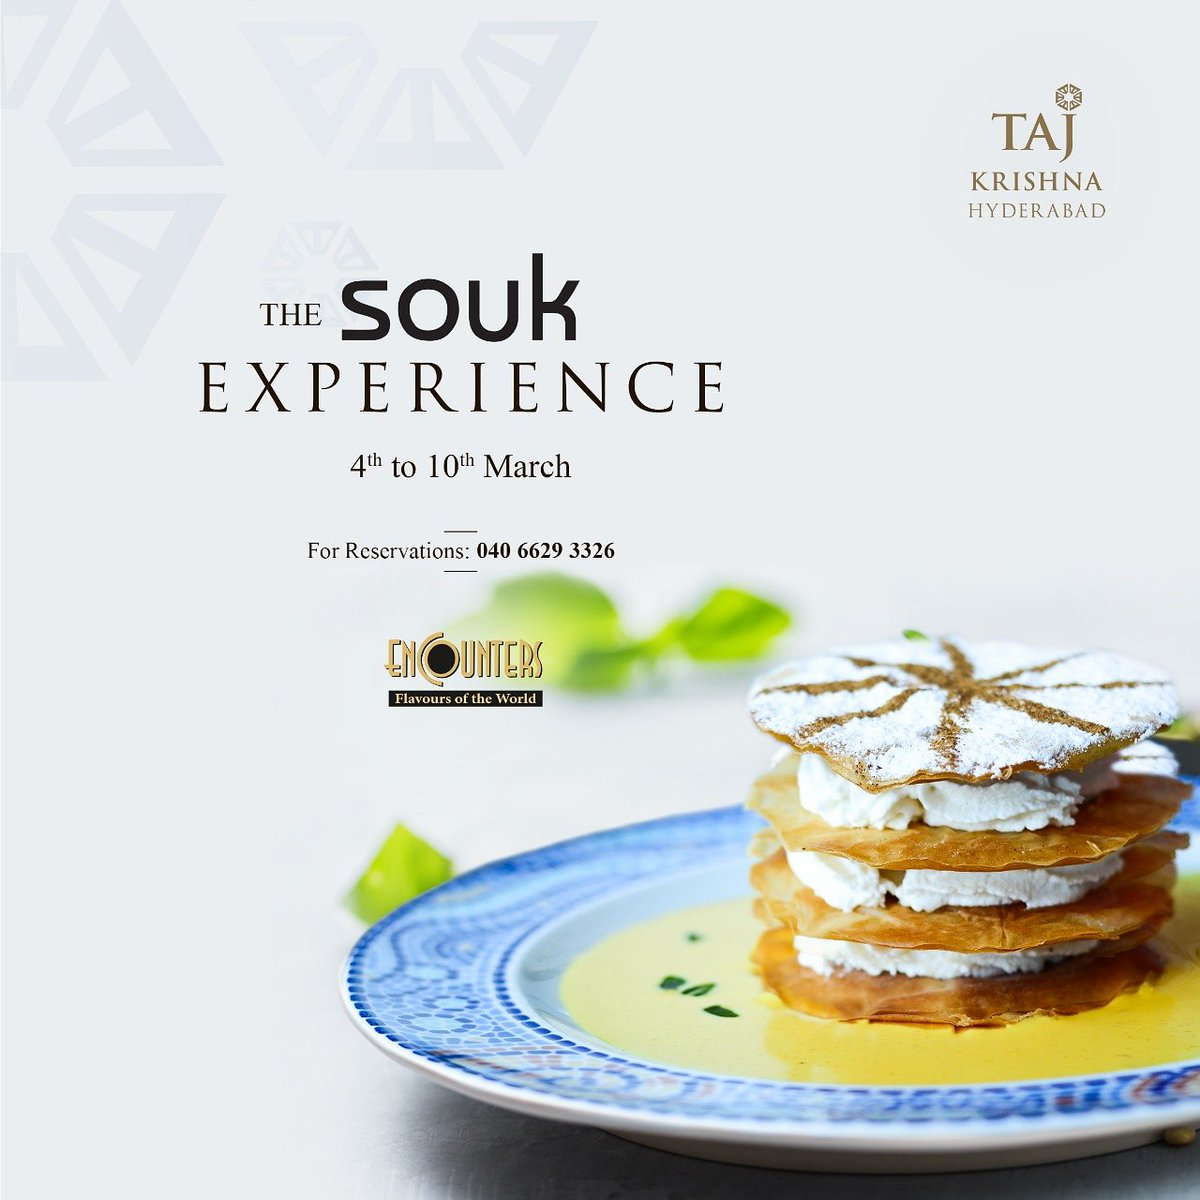 The Souk Experience!  Relish the delectable Eastern Mediterranean culinary crafts as Master Chef Simon recreates authentic Souk Specials of Taj Mahal Palace, Mumbai.  4th to 10th March  Encounters  For reservations: 040 6629 3326  #TajKrishnaHyderabad #Souk #TheSoukExperience